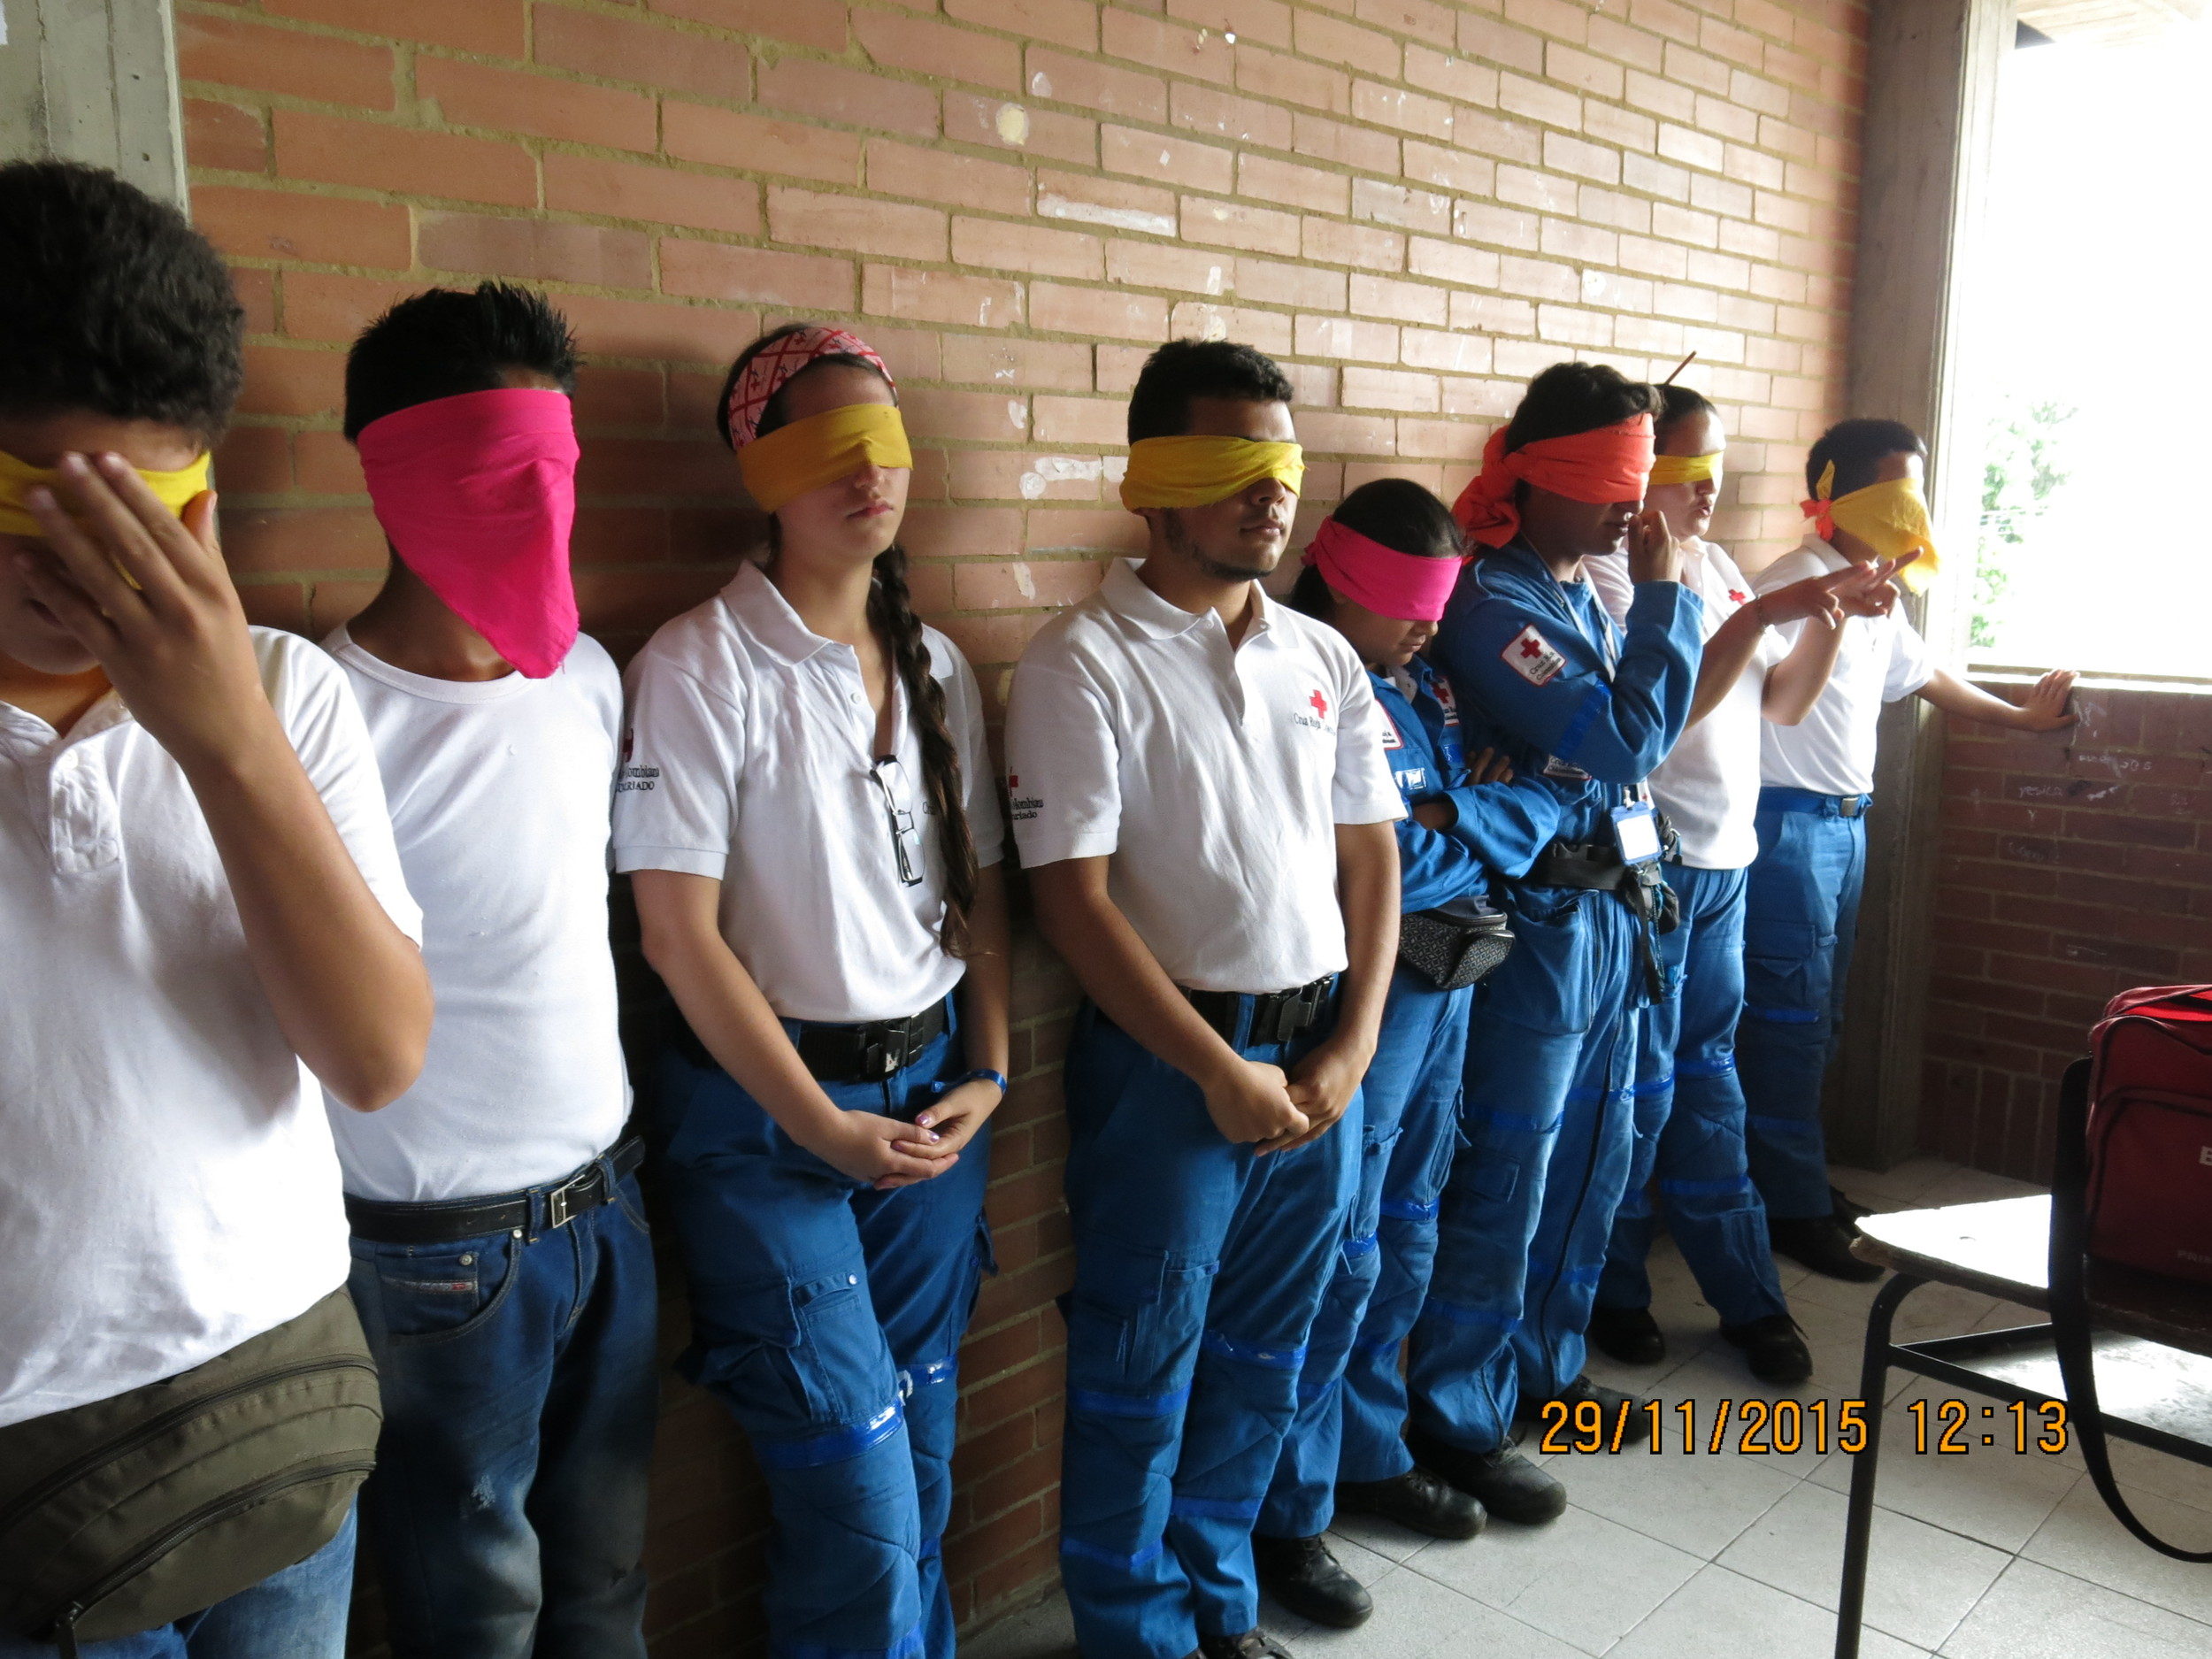 """El juego ciego"", una actividad sobre liderazgo y habilidades de comunicación / Playing ""Blindfolded"", an activity related to leadership and communication skills"